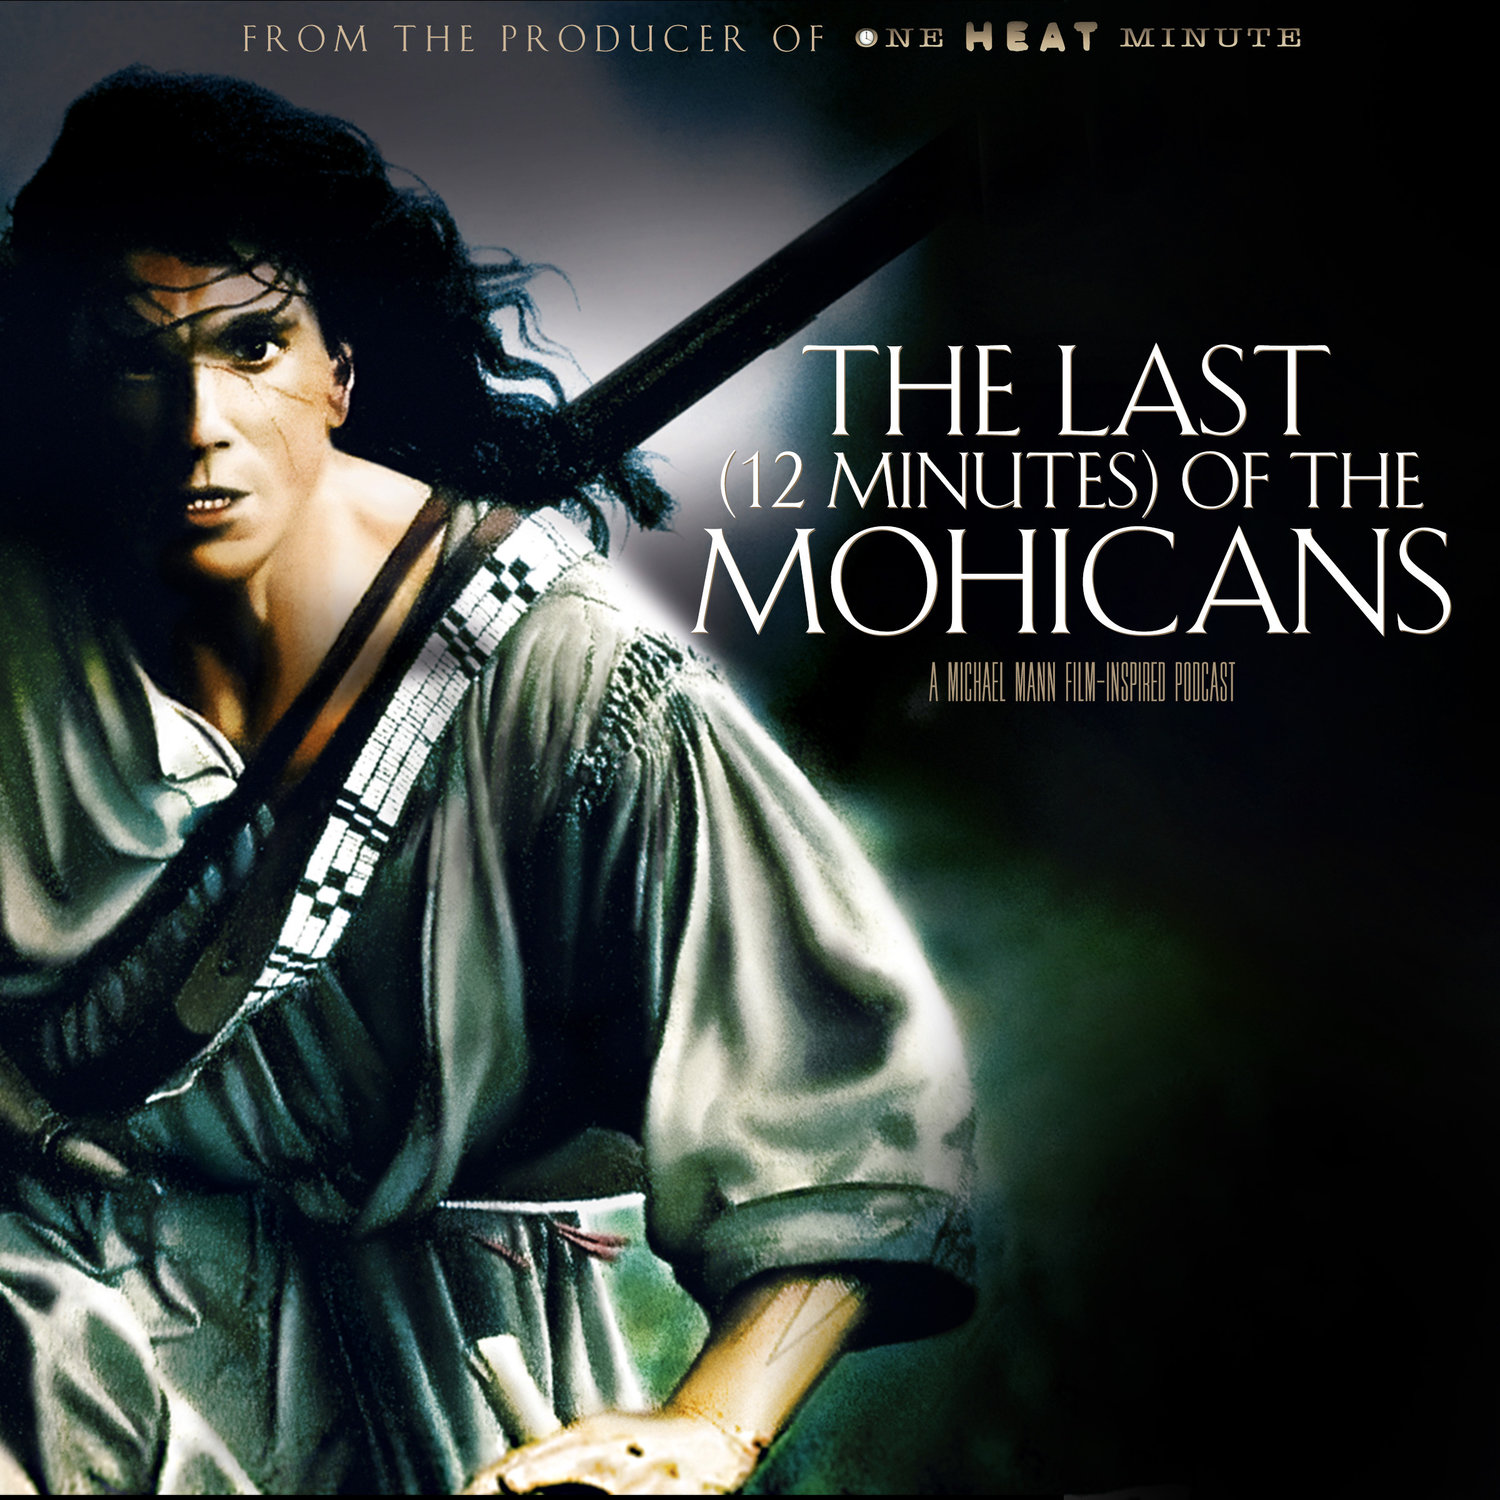 The Last 12 Minutes Of The Mohicans Episode 11 Manohla Dargis And Matt Zoller Seitz One Heat Minute Productions Dosmovies (aka 2movies) is the place where users can review movies, find streaming sources, follow tv shows and have fun! one heat minute productions